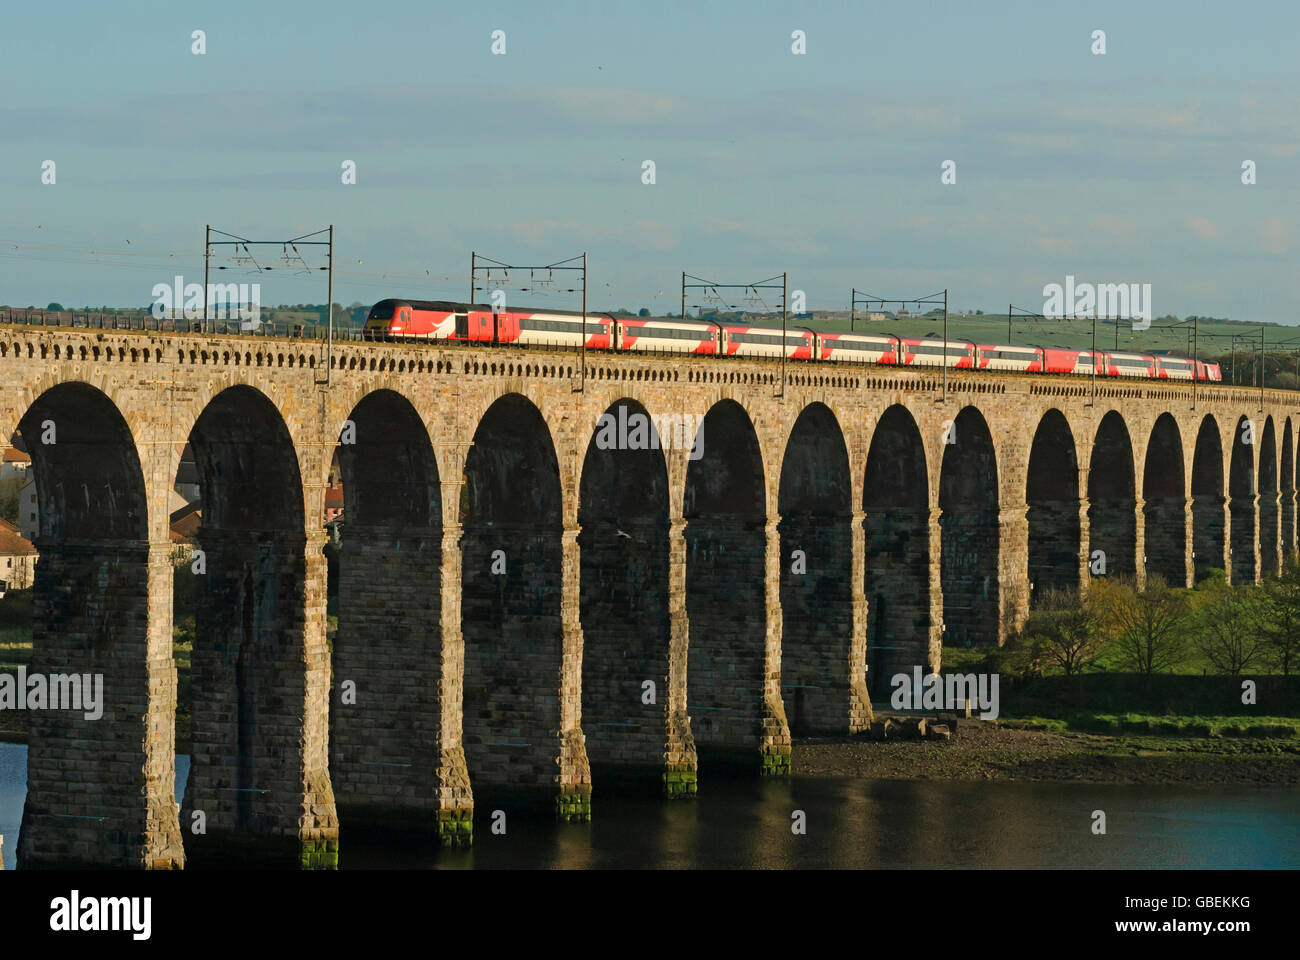 Intercity passenger train travelling over the railway viaduct built by Robert Stevenson in Berwick-upon-Tweed, England, - Stock Image